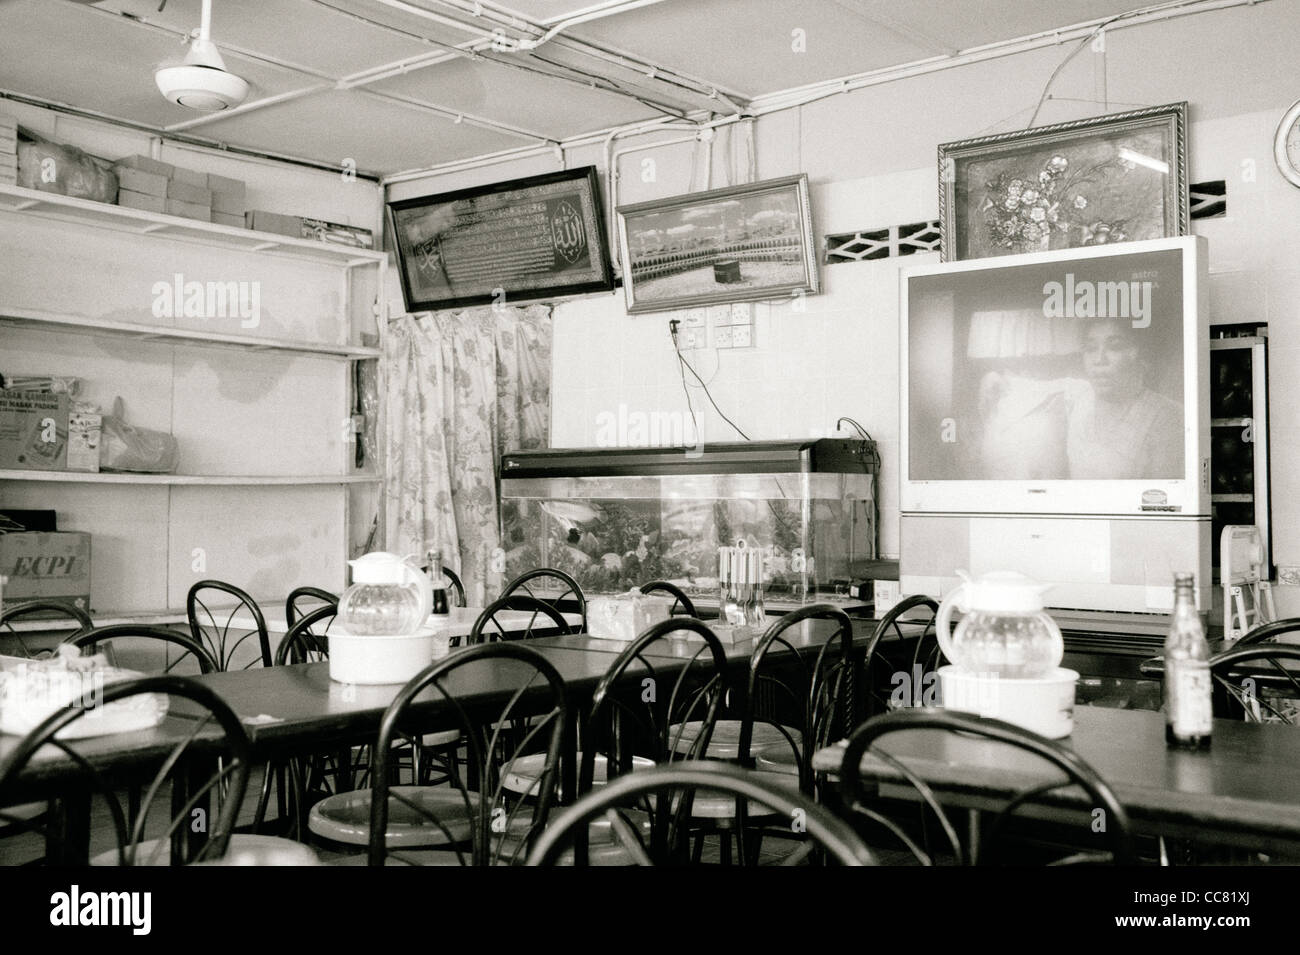 Documentary Travel Photography A Cafe Restaurant In Kampung Baru In Stock Photo Alamy